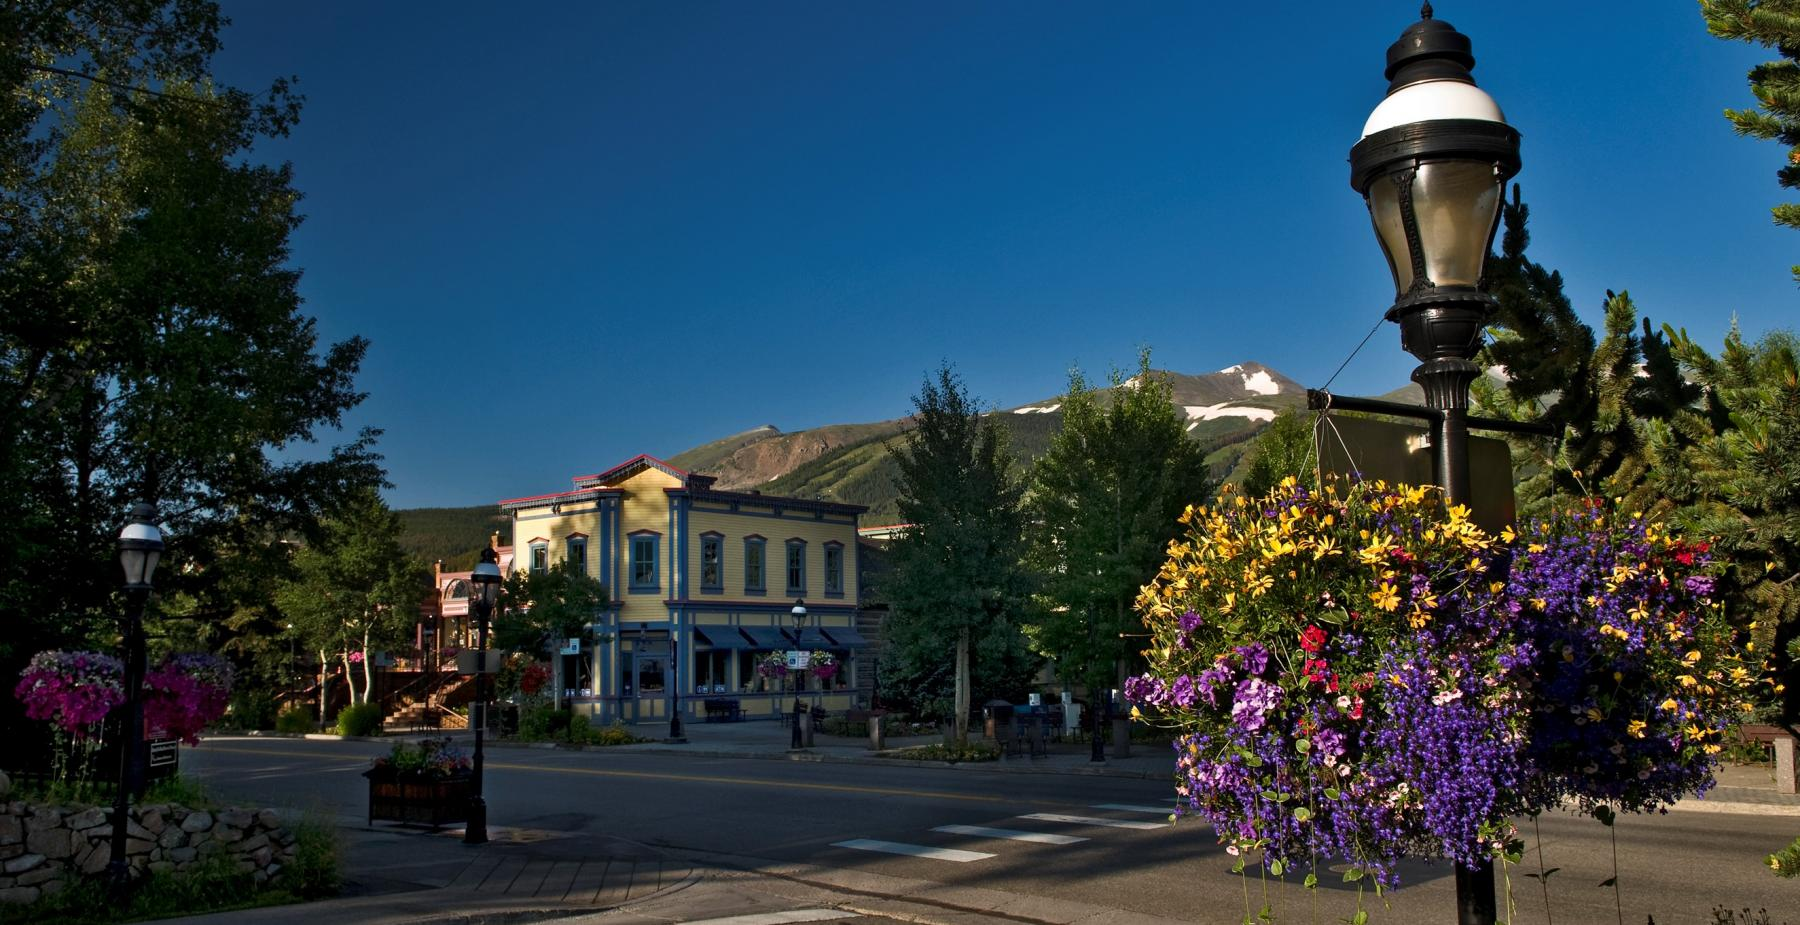 Breckenridge Main Street in the Summer